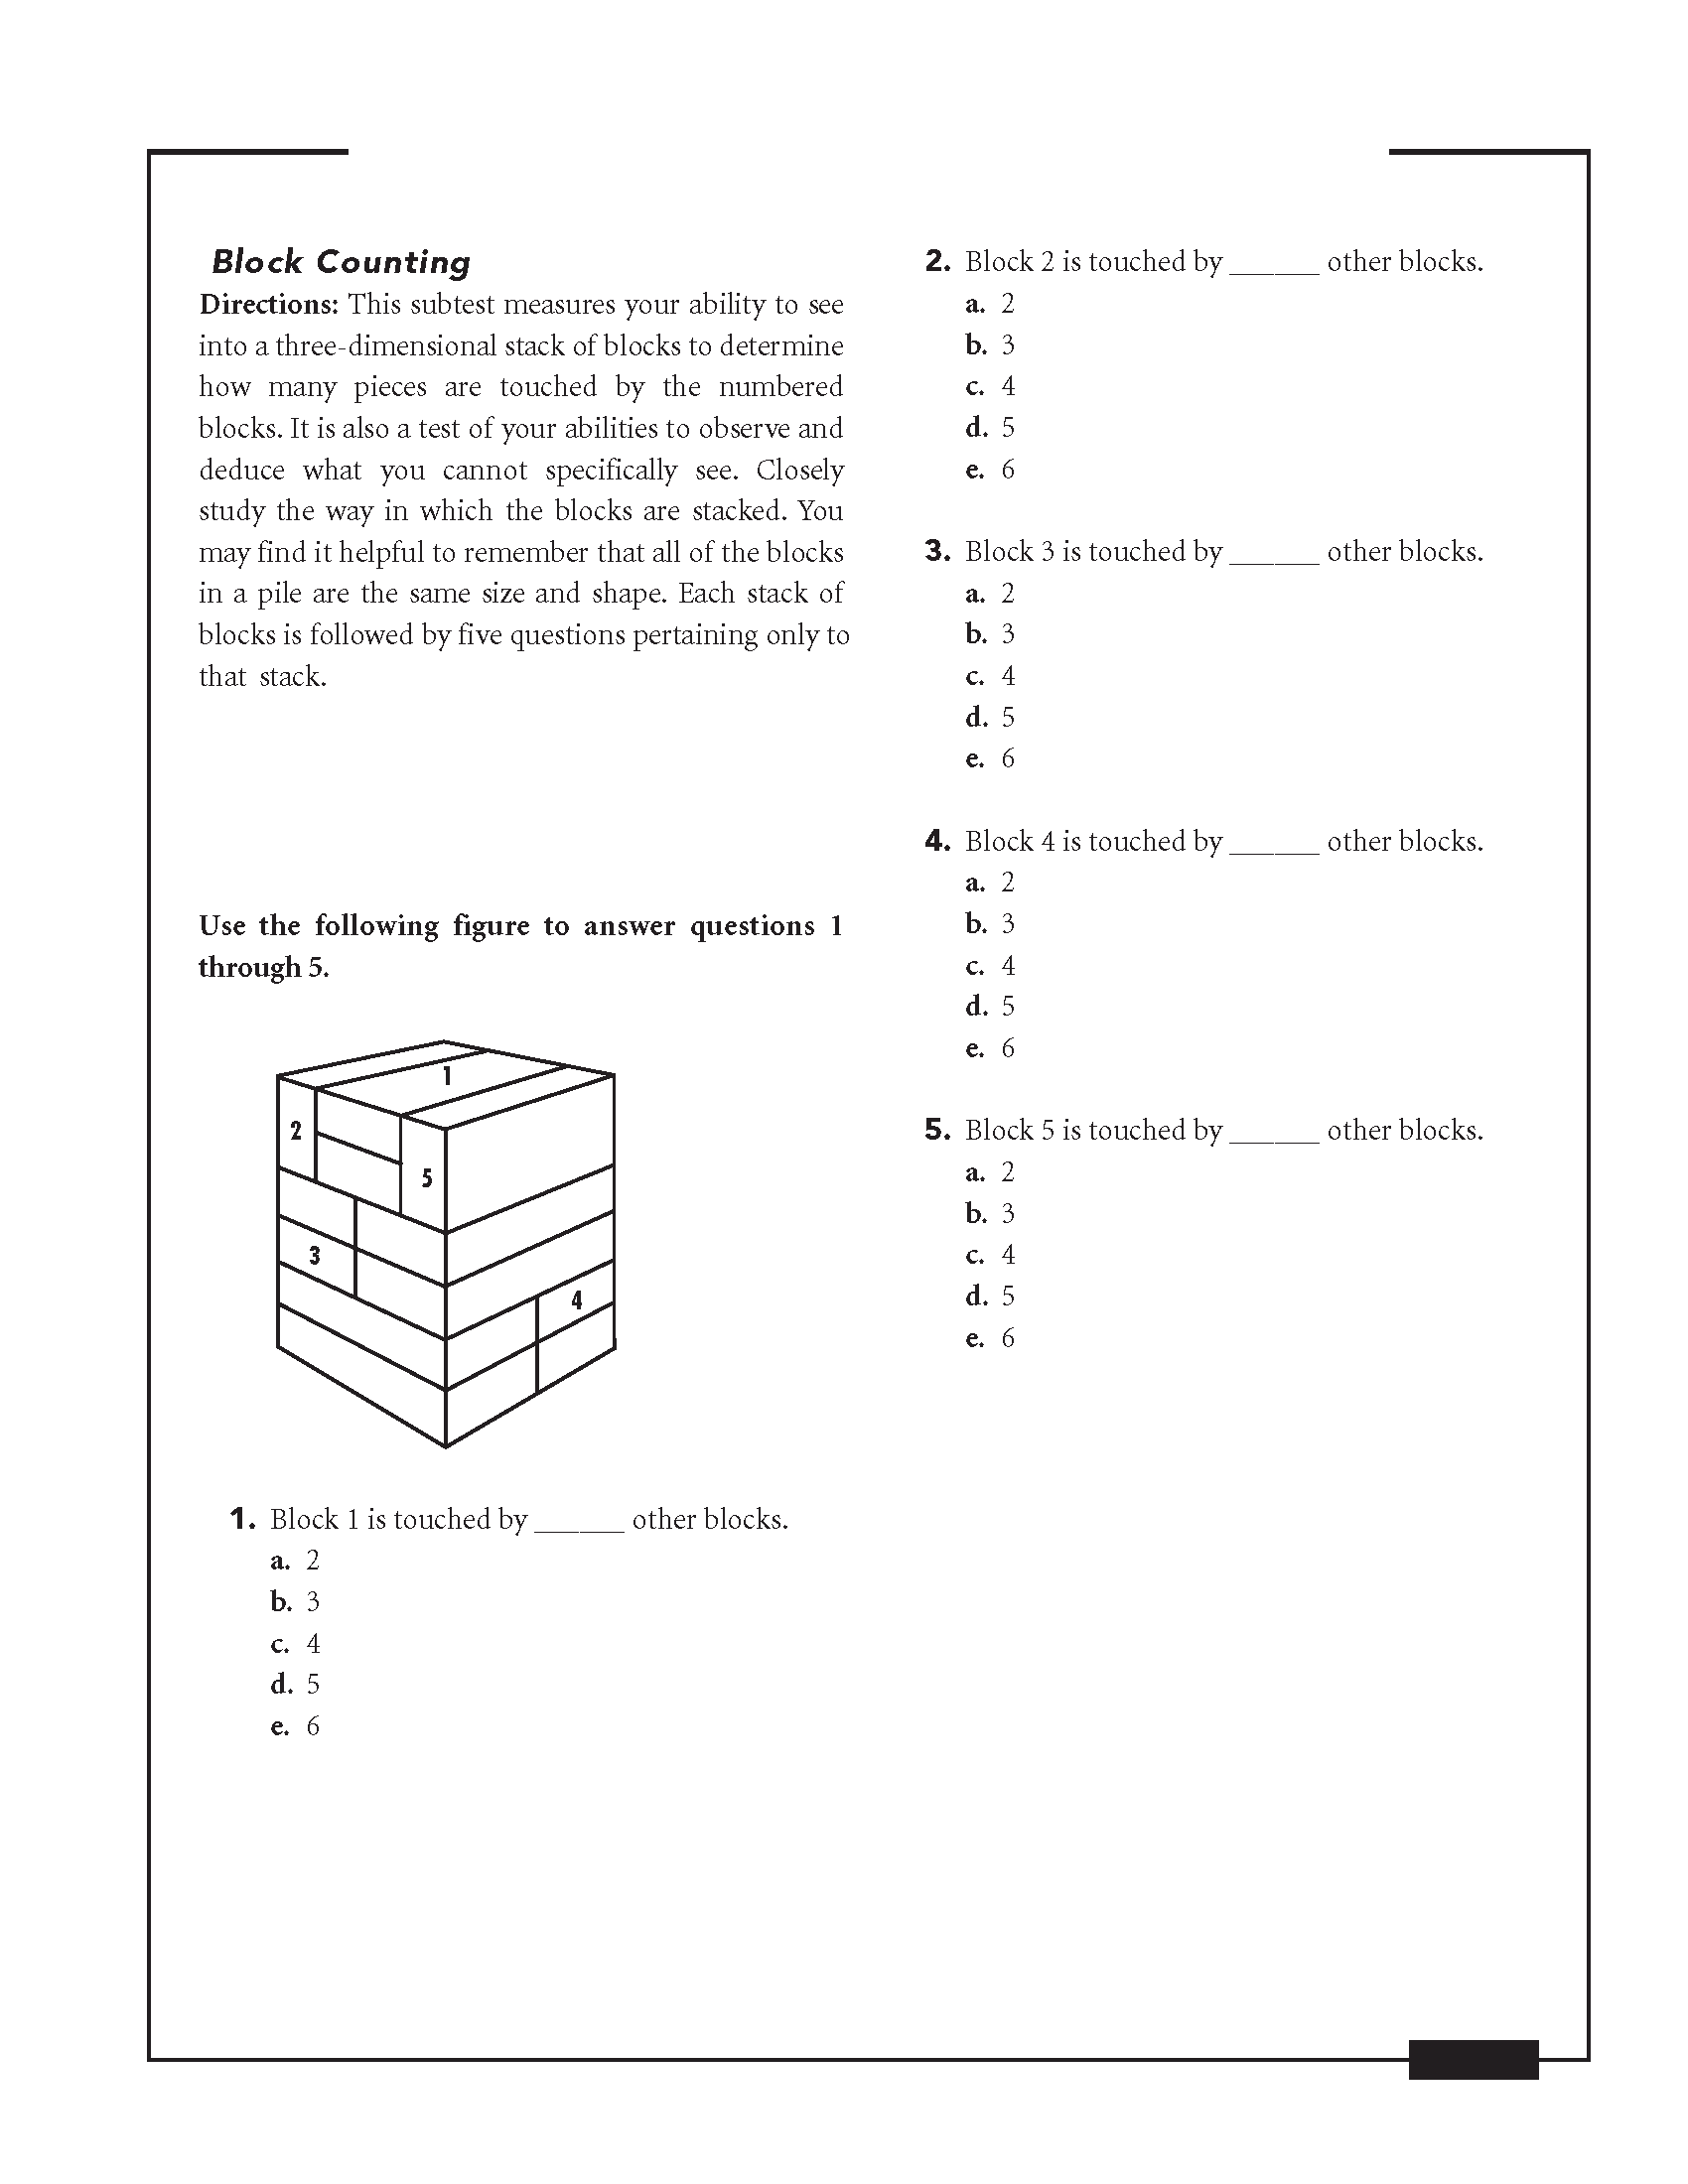 AFOQT Block Counting Practice Test Questions